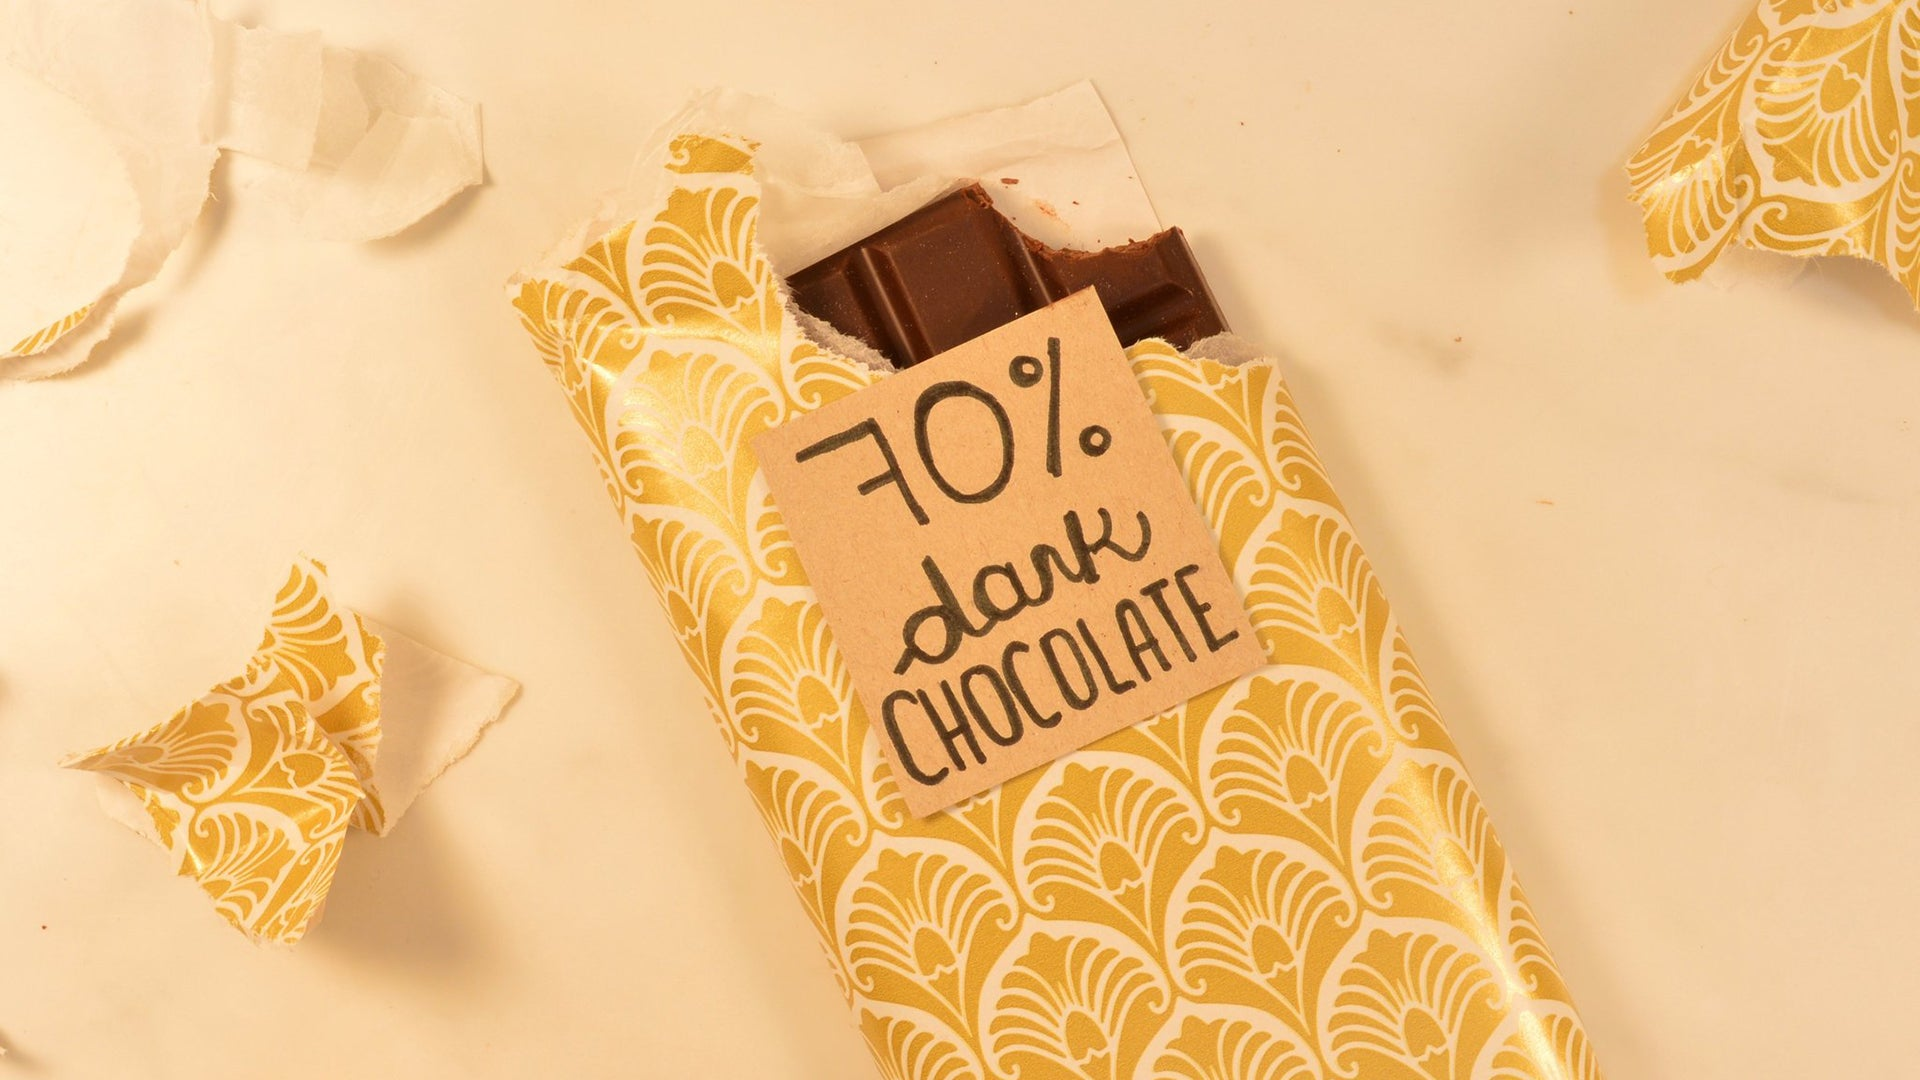 Dark Chocolate Without Added Cocoa Butter